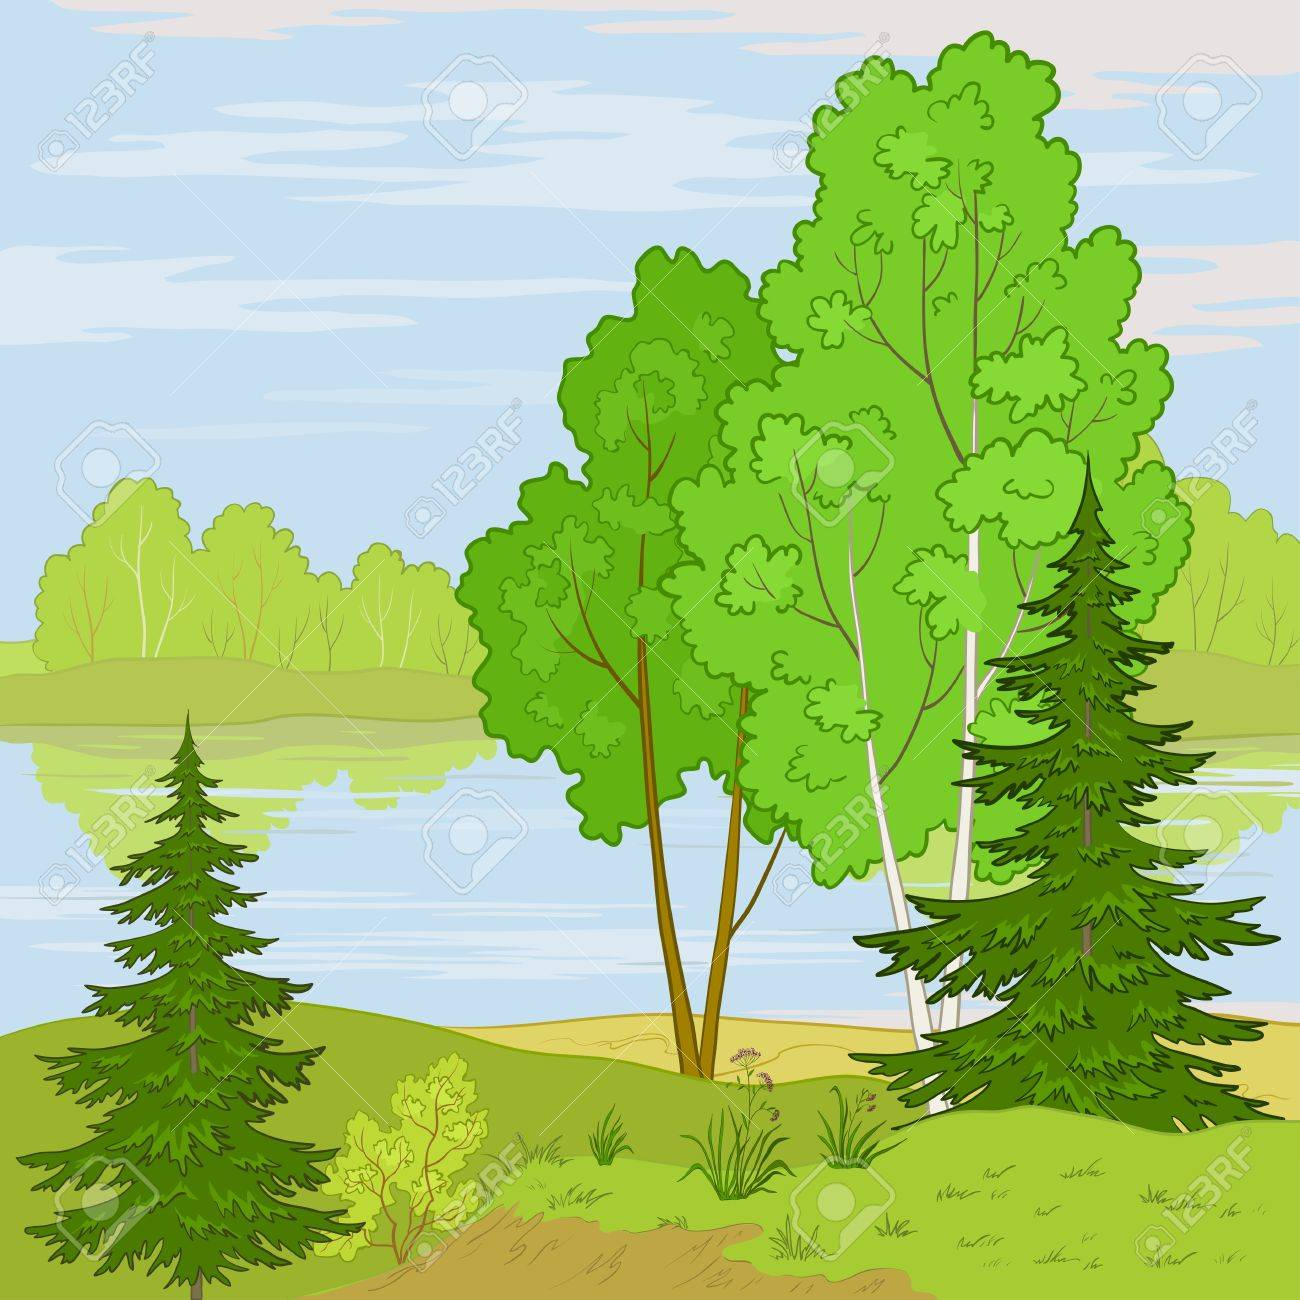 summer landscape: forest, river and the blue sky with white clouds Stock Vector - 10427521